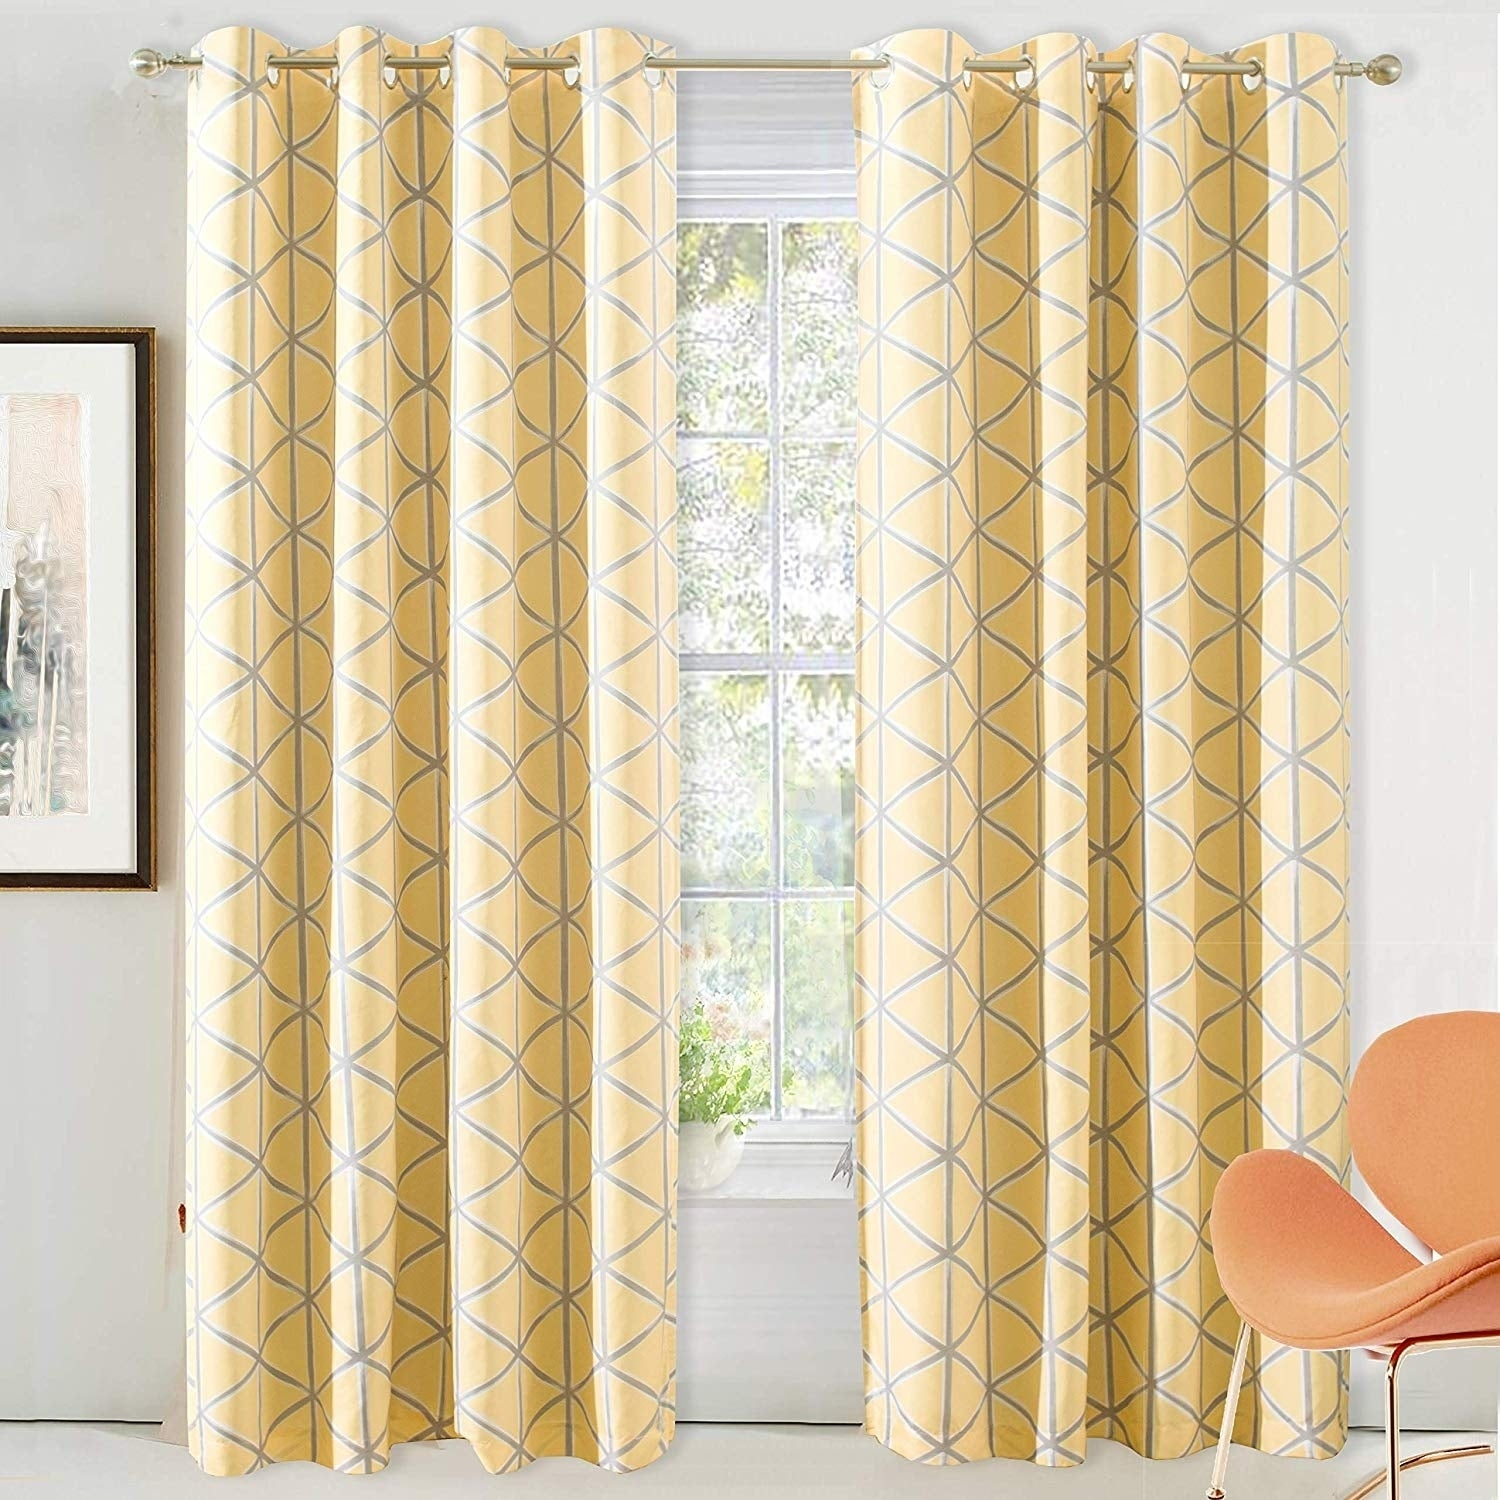 Driftaway Raymond Geometric Pattern Lined Blackout Window Curtain Panel Pair Regarding Gracewood Hollow Tucakovic Energy Efficient Fabric Blackout Curtains (View 15 of 20)